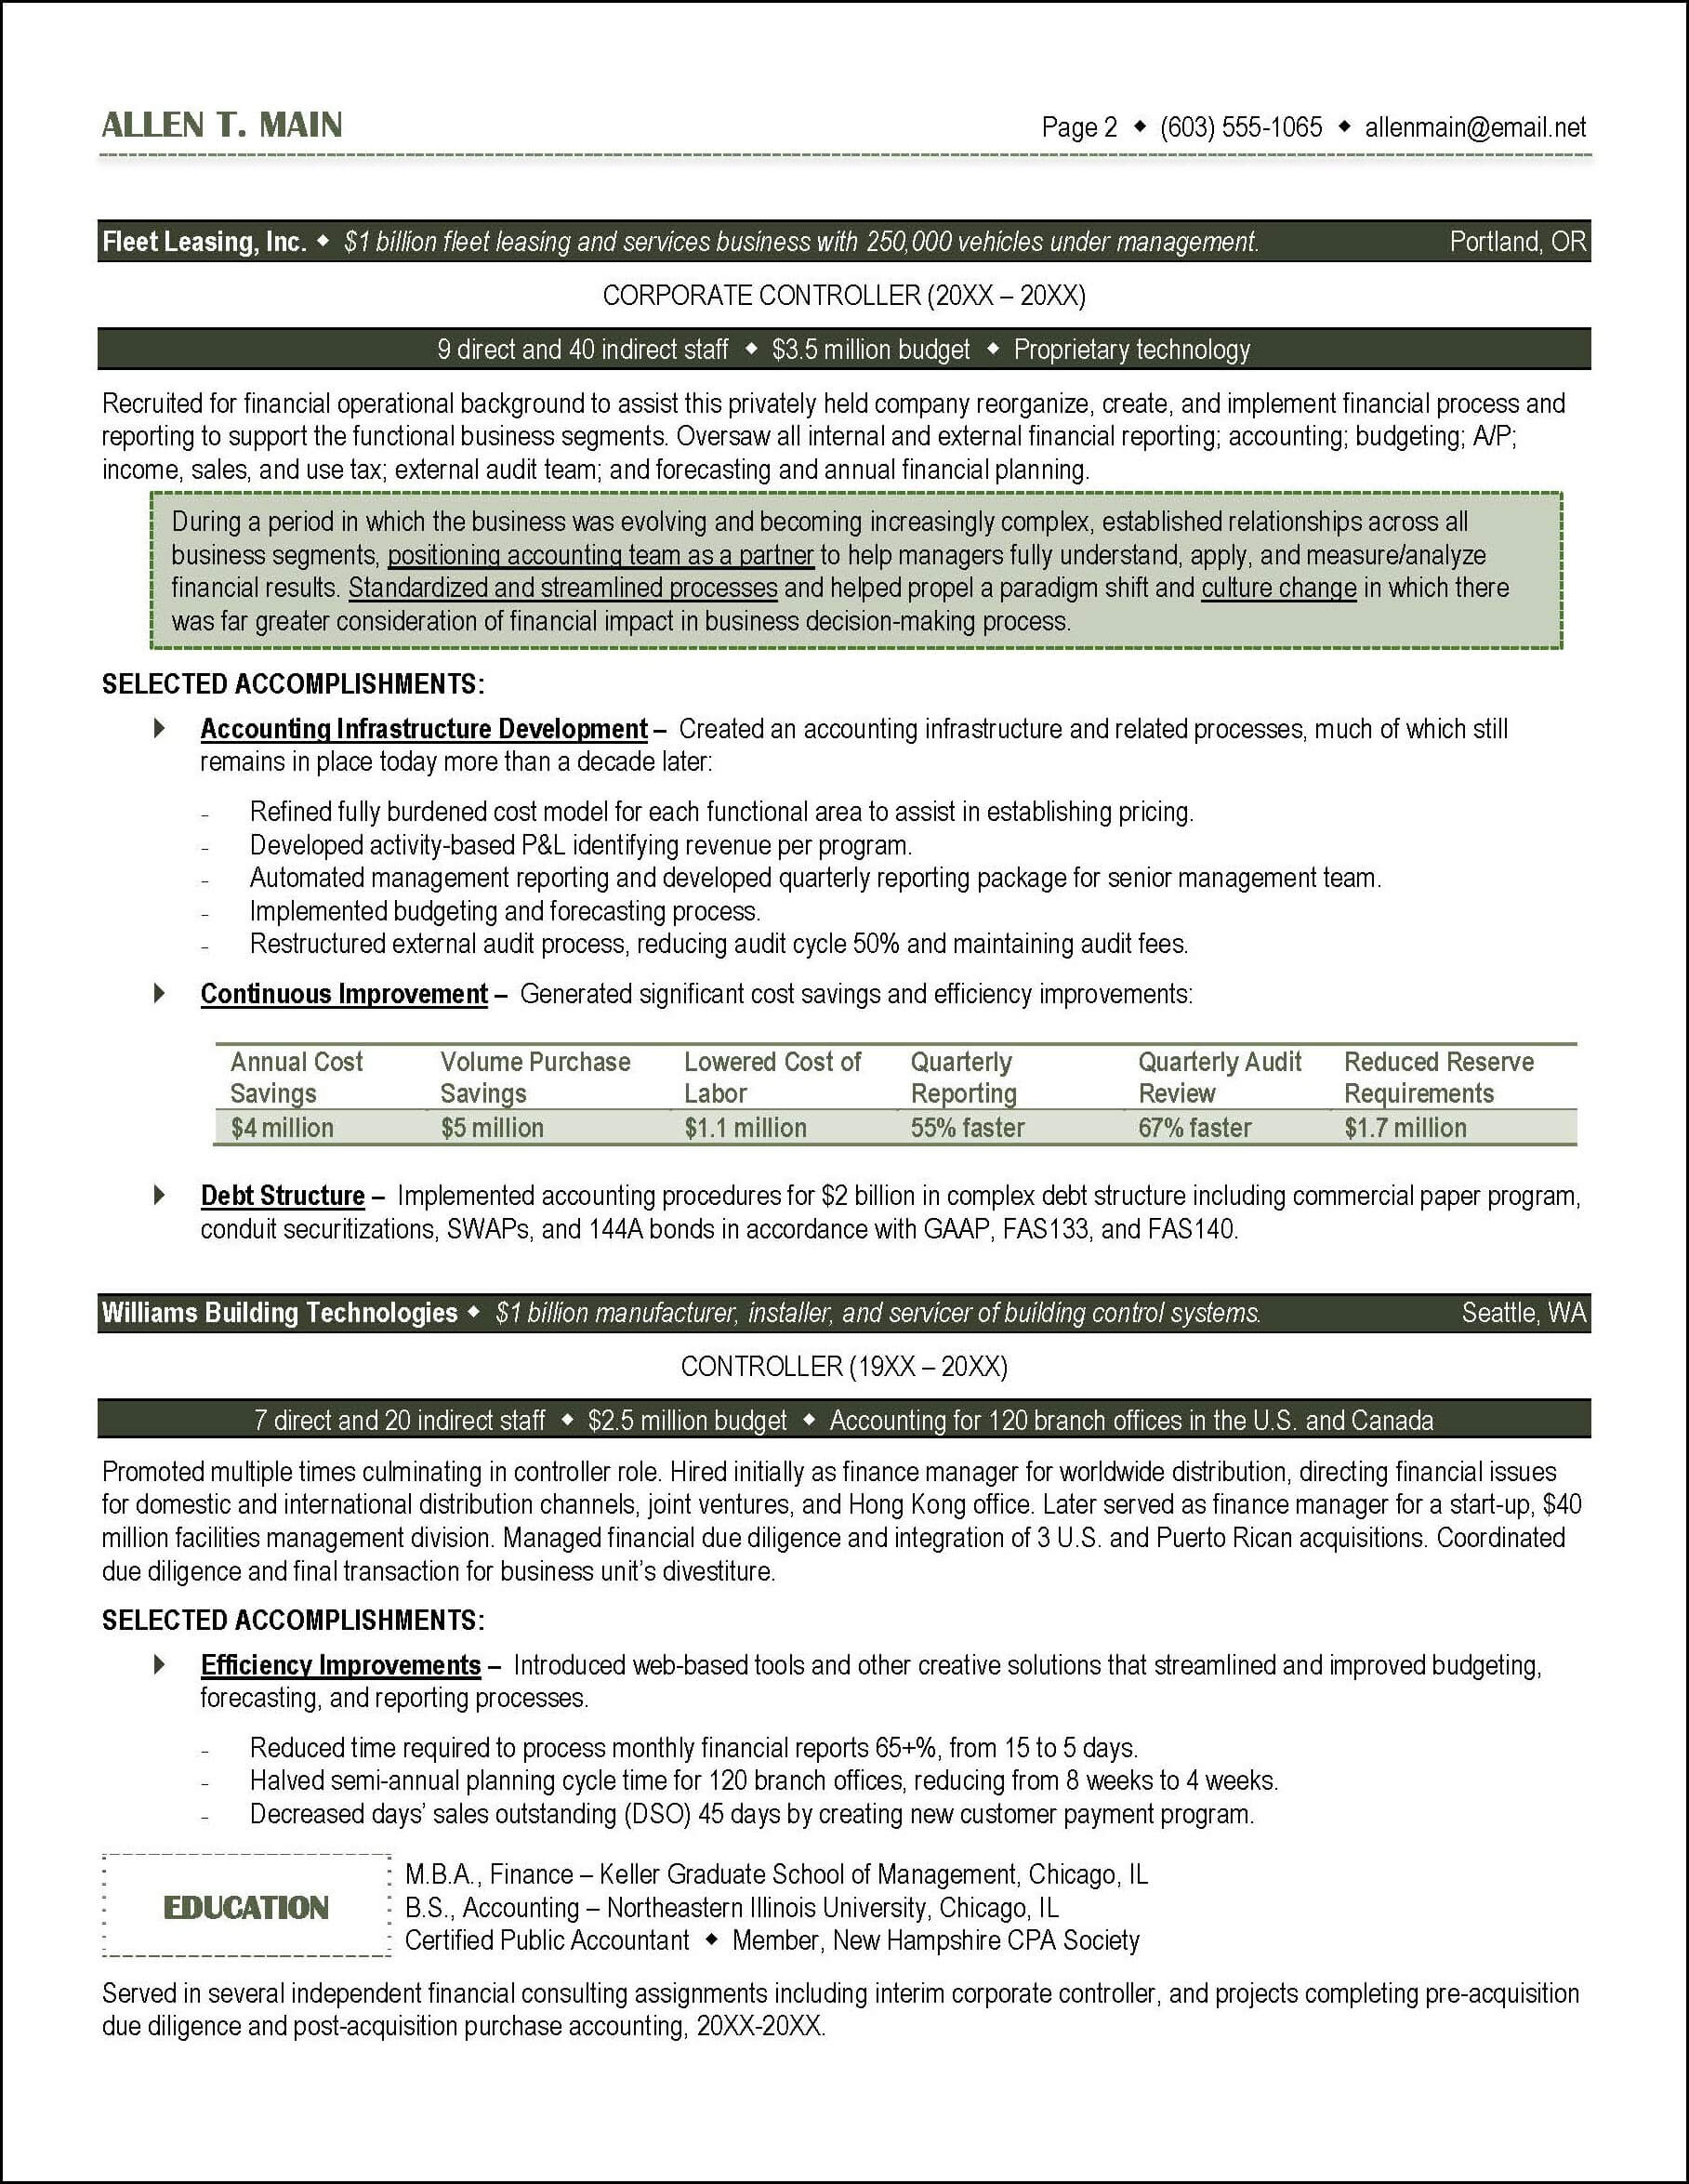 accounting resume example page 2 - Accounting Resume Sample 2